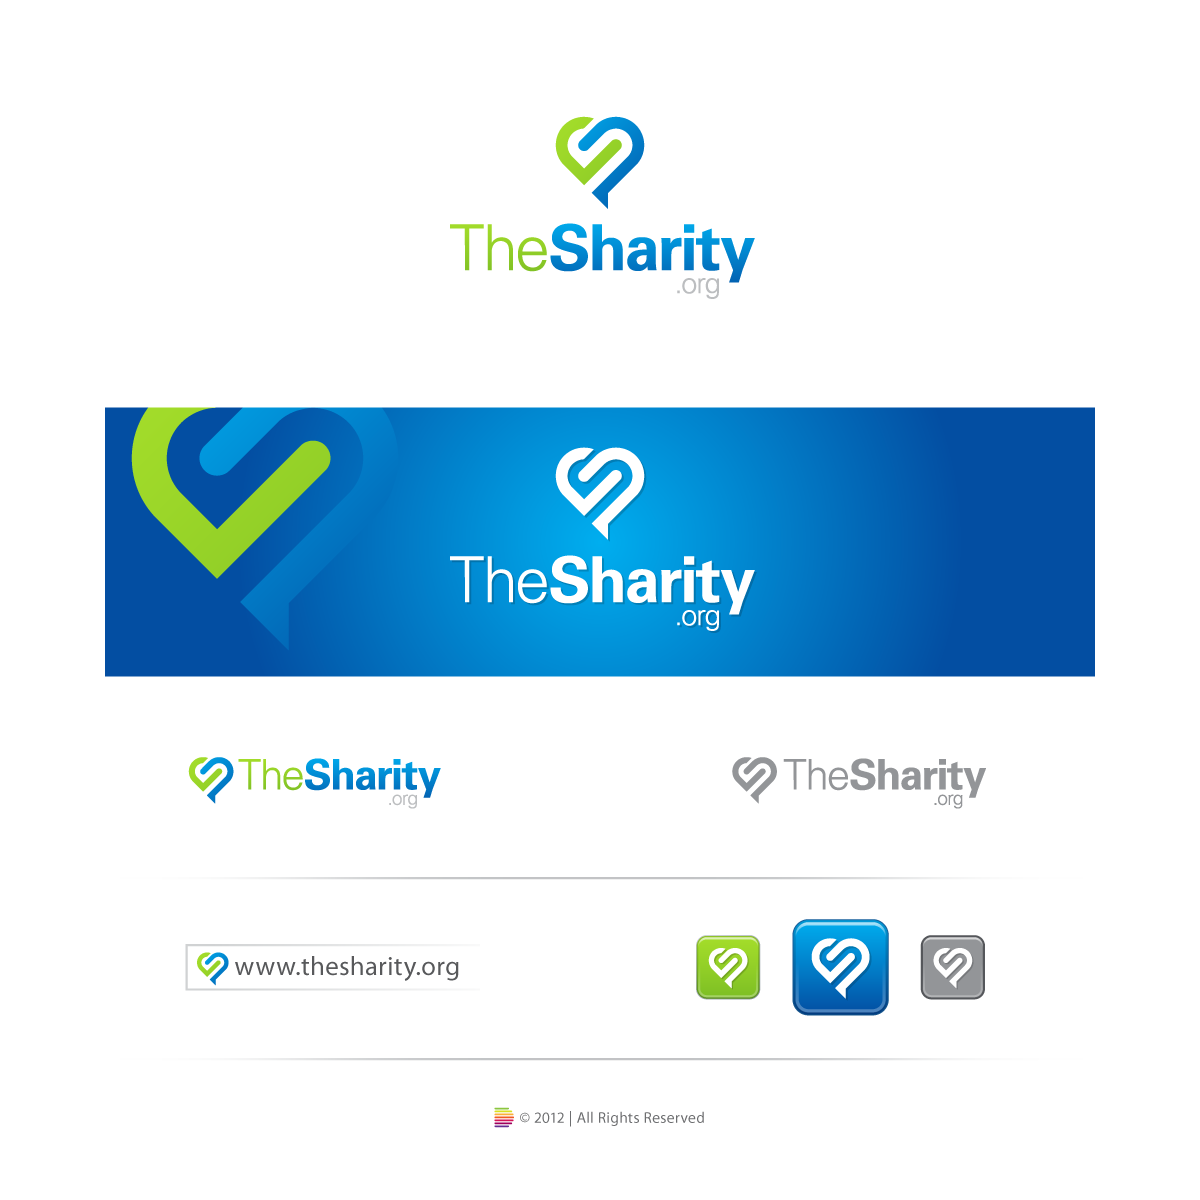 TheSharity.org needs a new logo